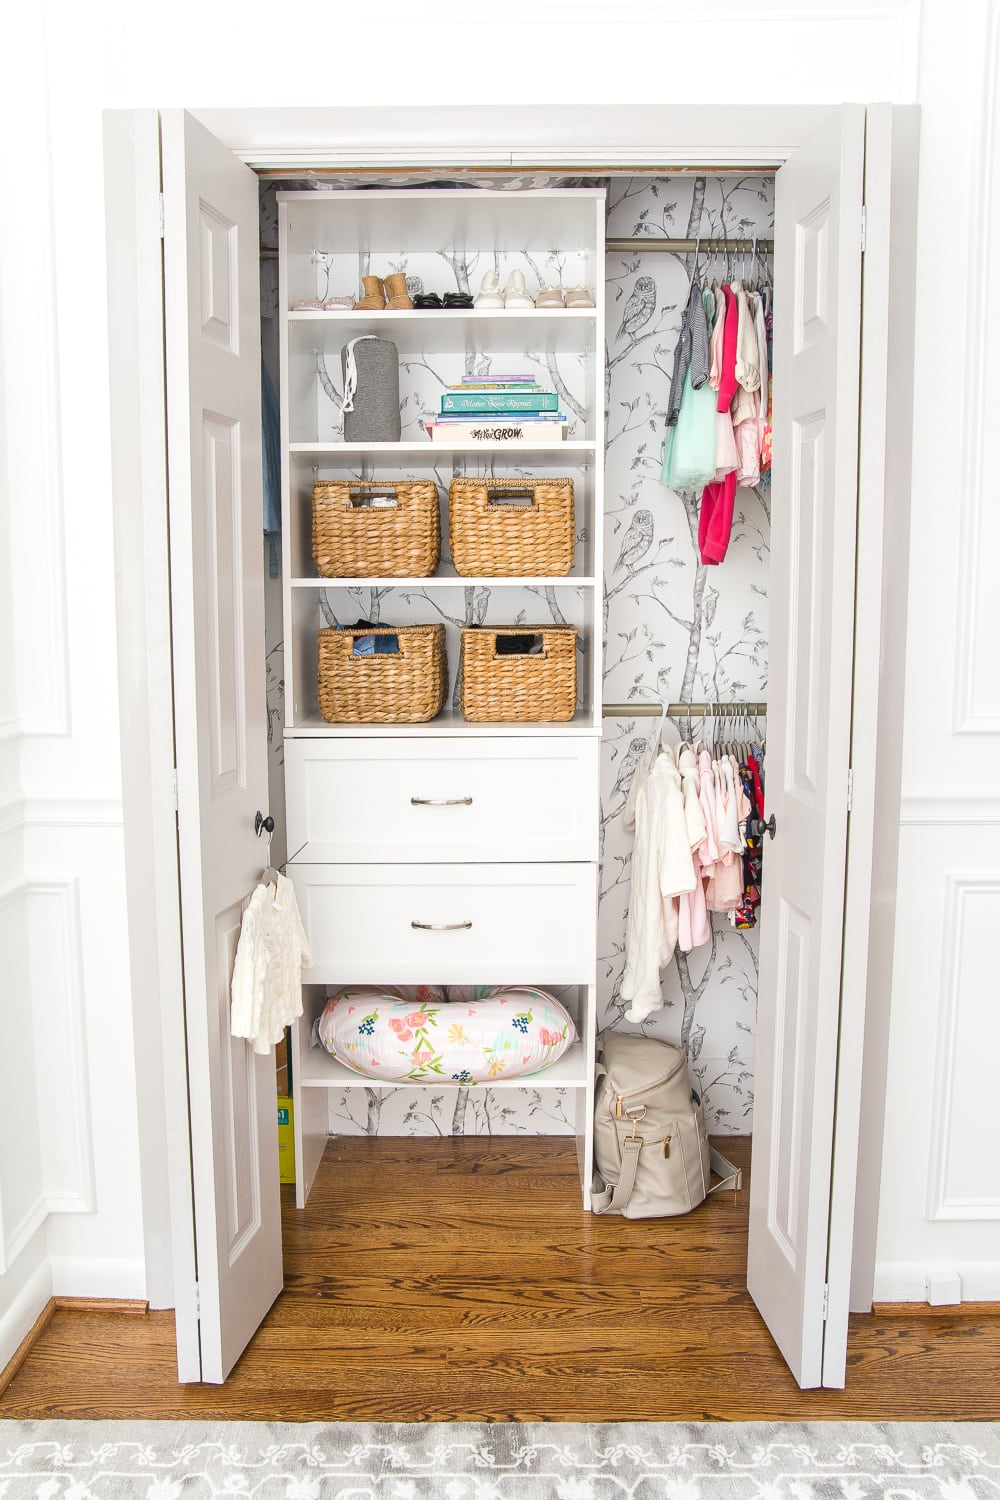 Nursery Organization | Baby closet with shelving, baskets, and closest dividers to make it easy to find everything.